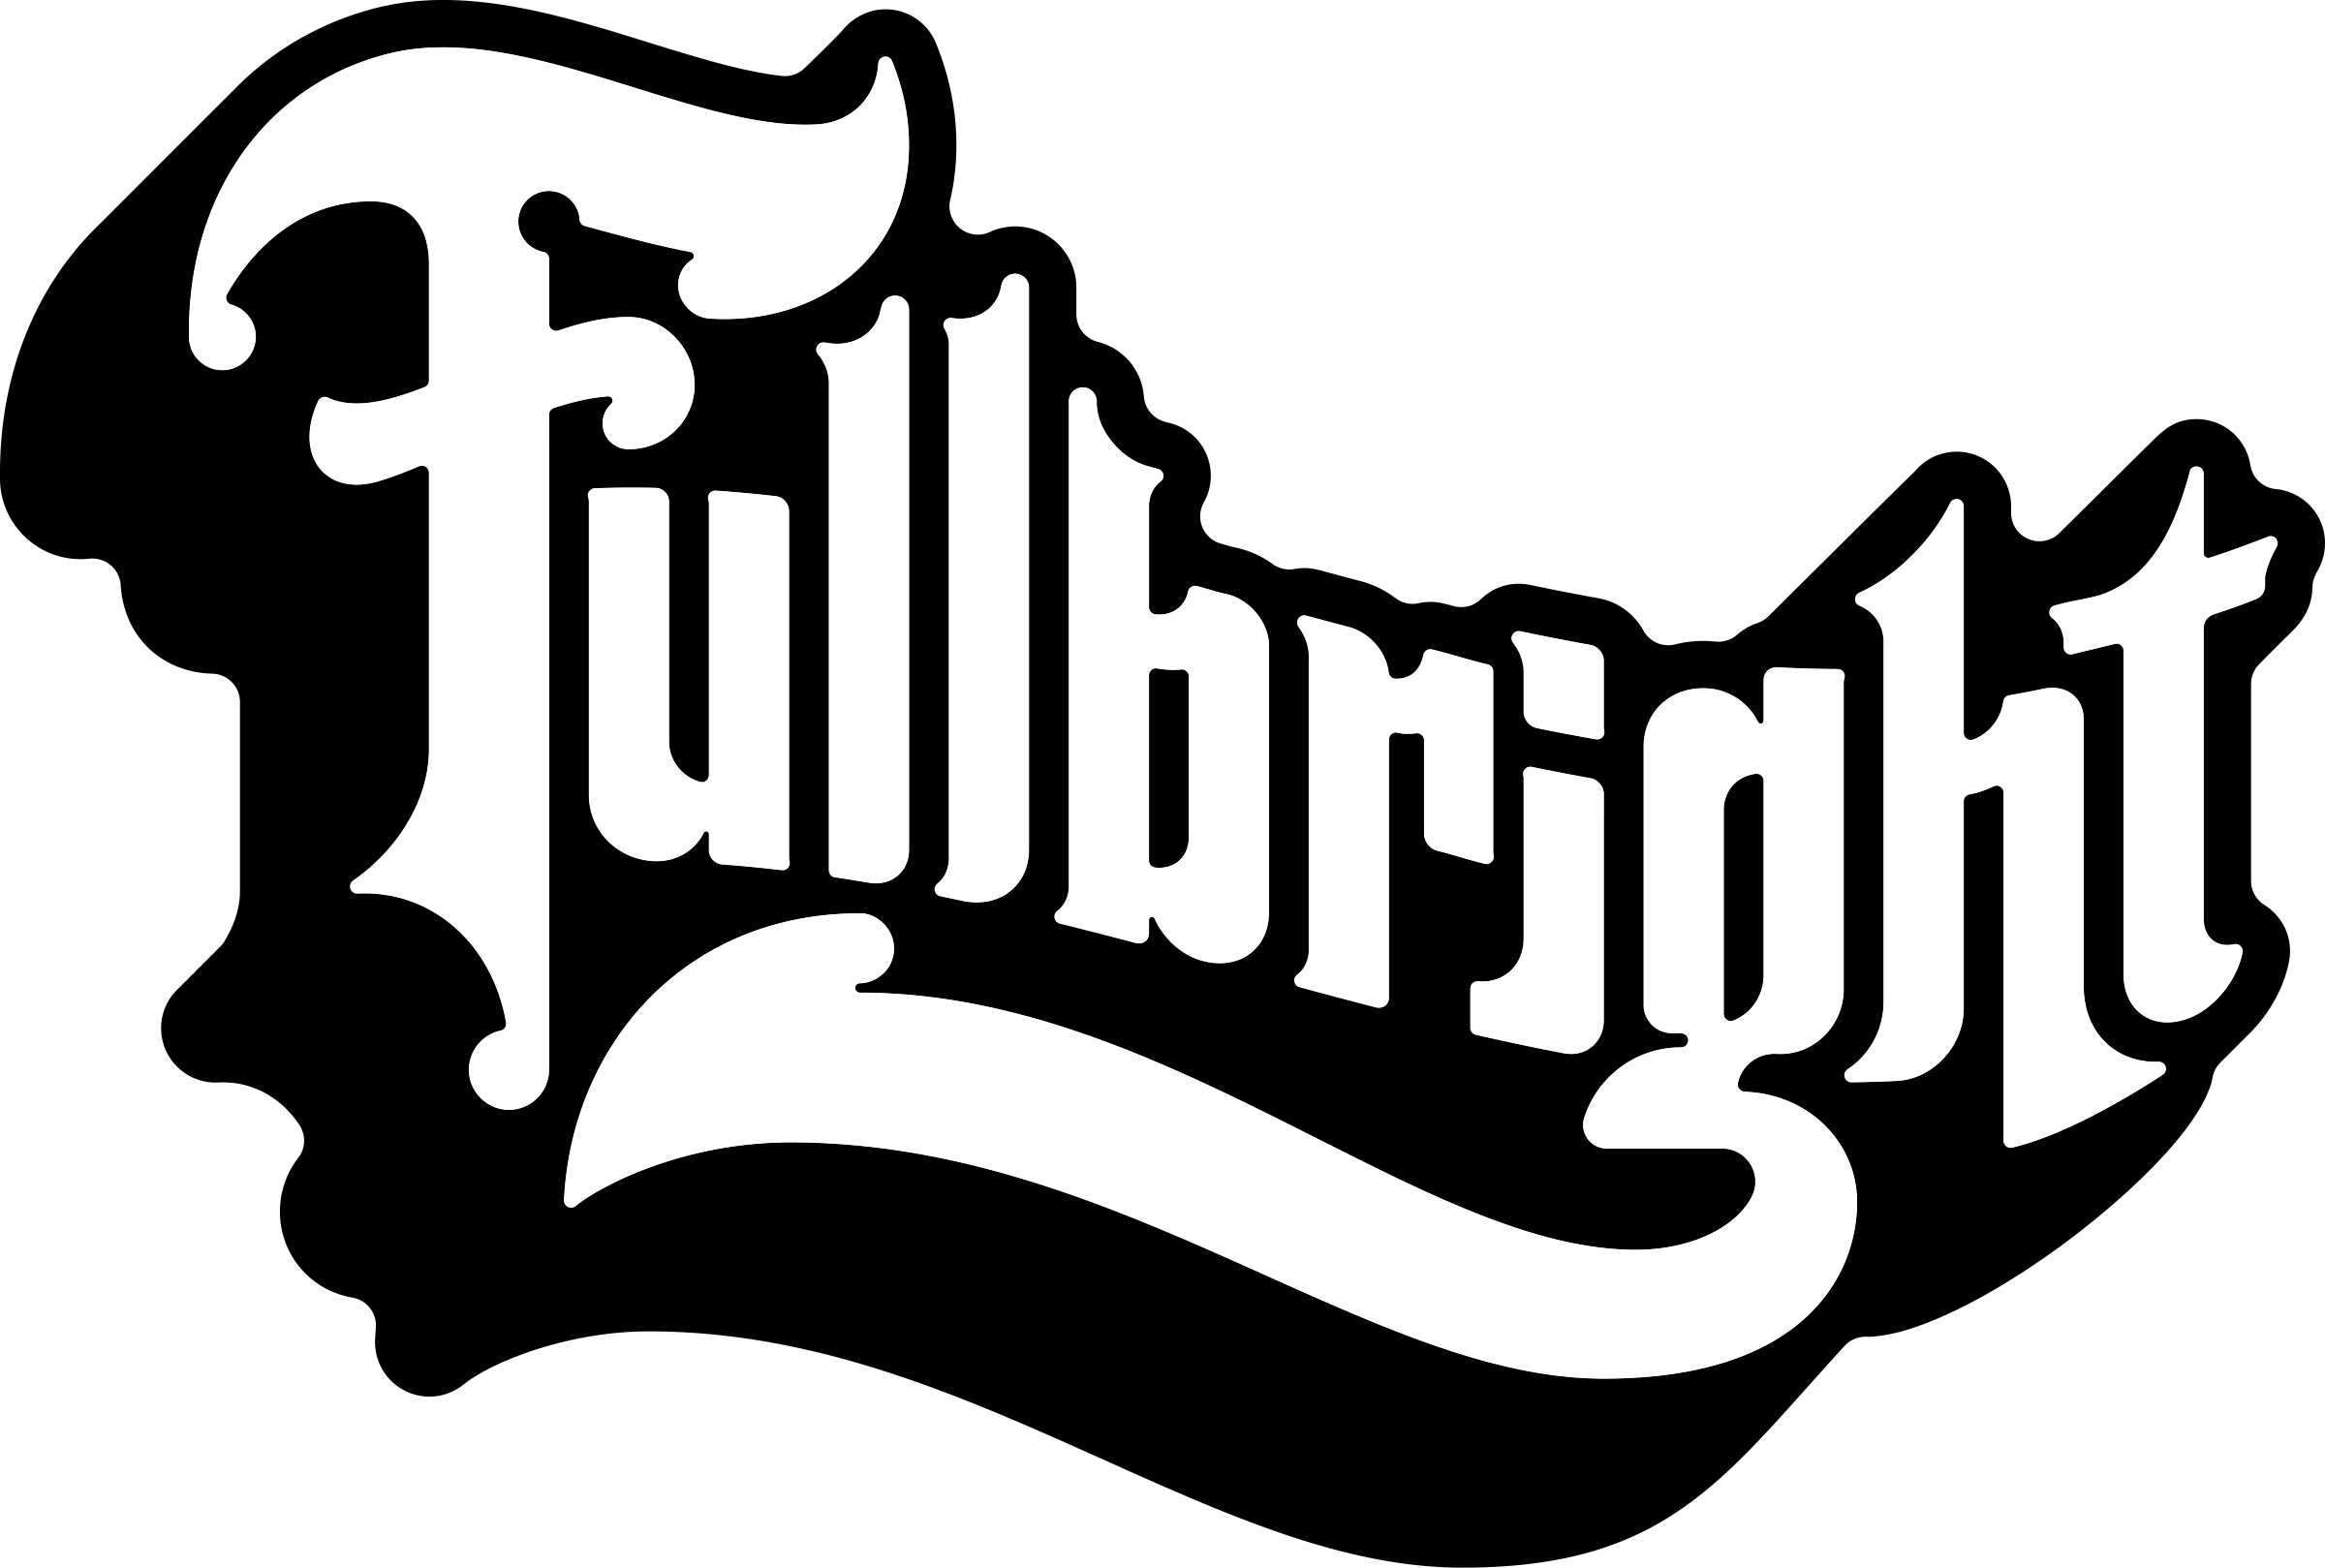 Fullbright_Type_bw.png